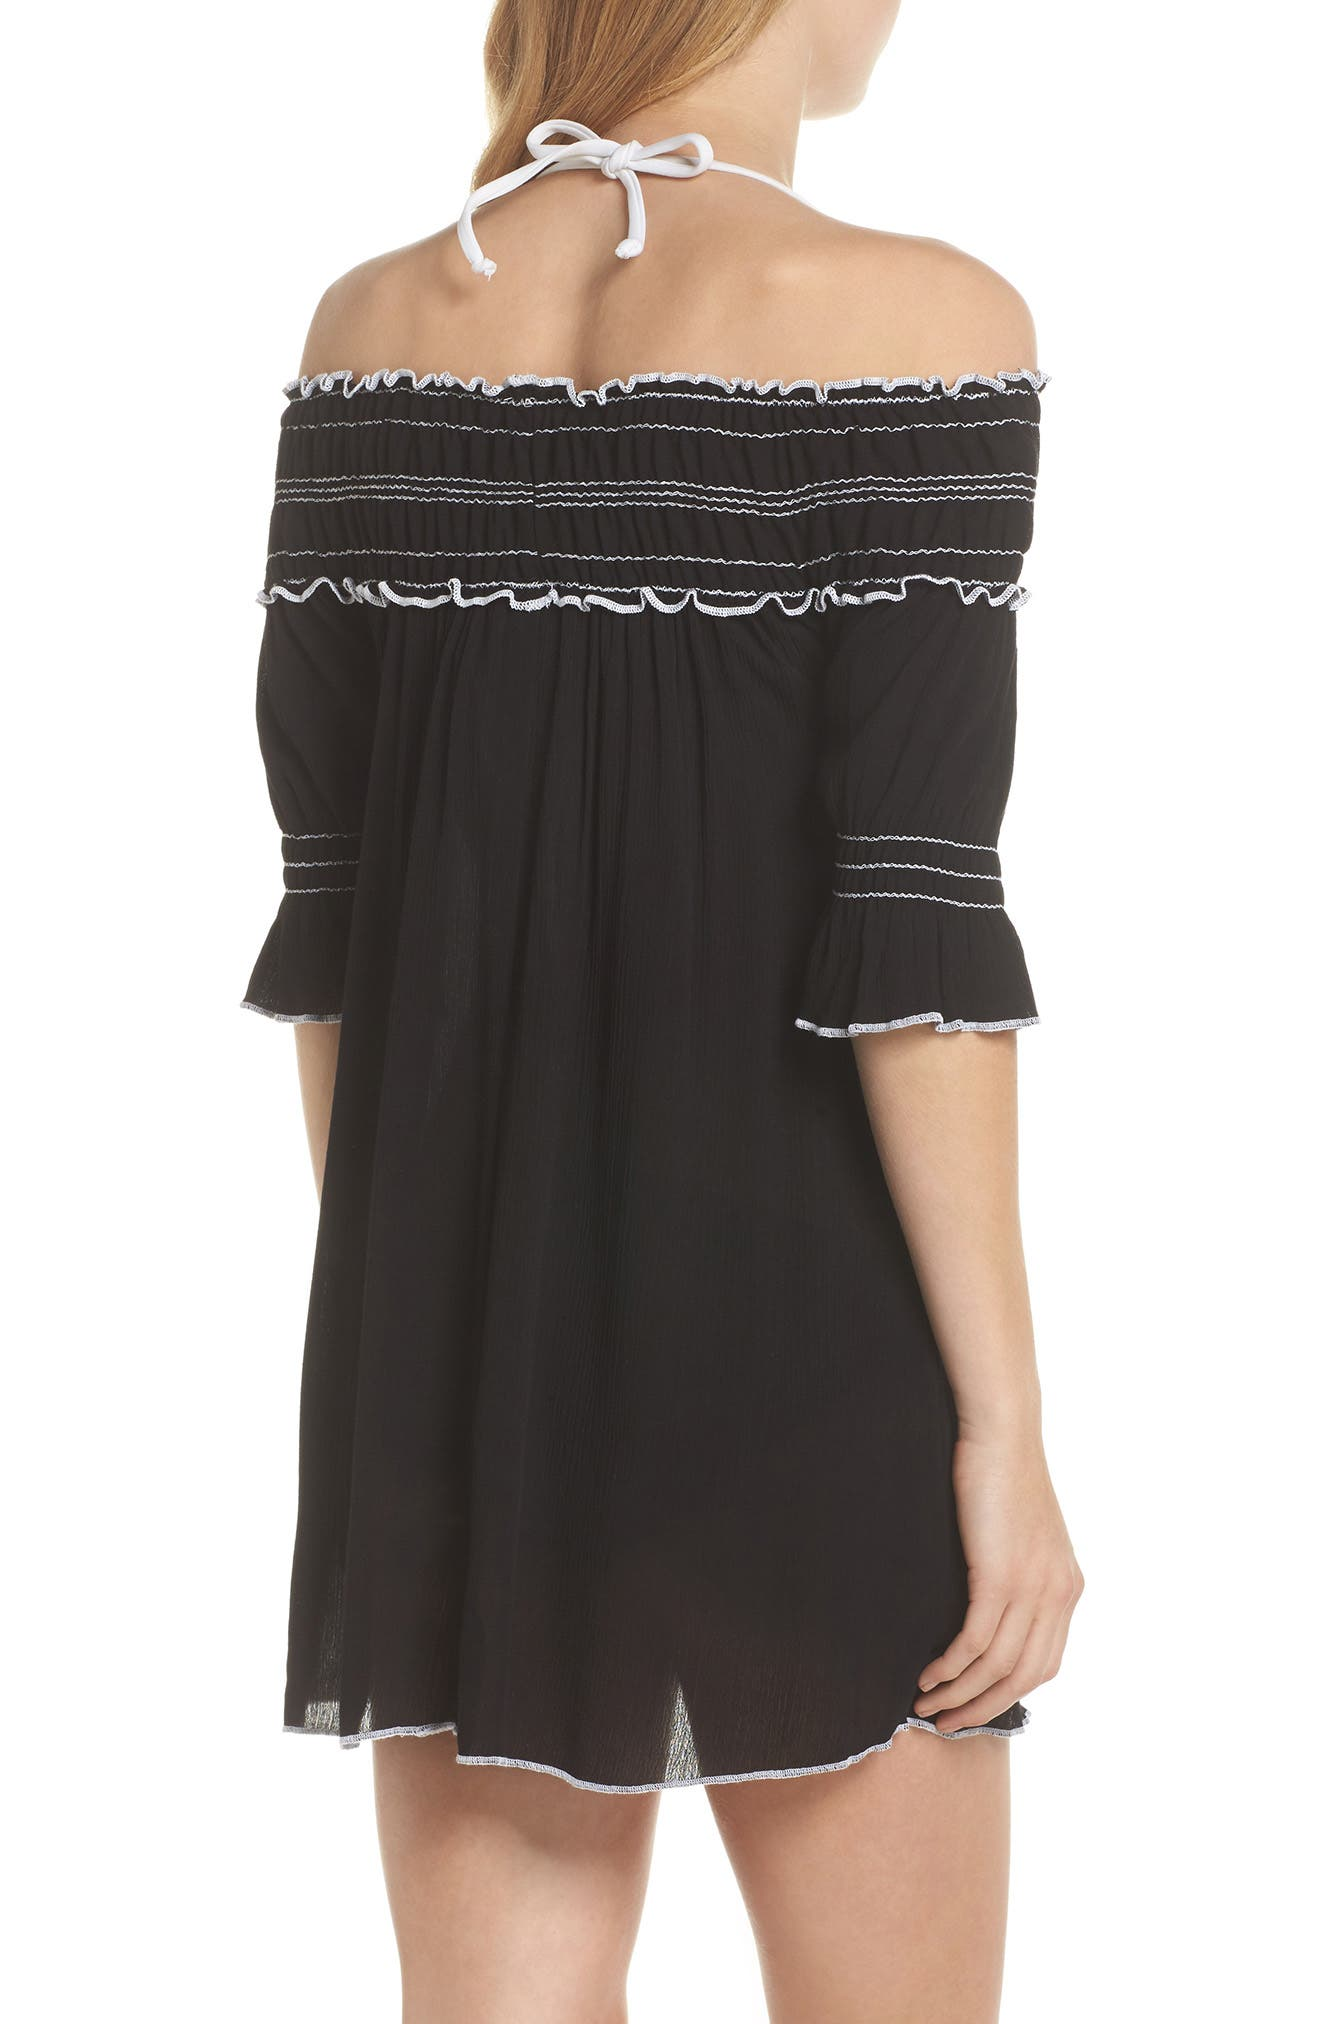 Nightingale Off the Shoulder Cover-Up Dress,                             Alternate thumbnail 2, color,                             001